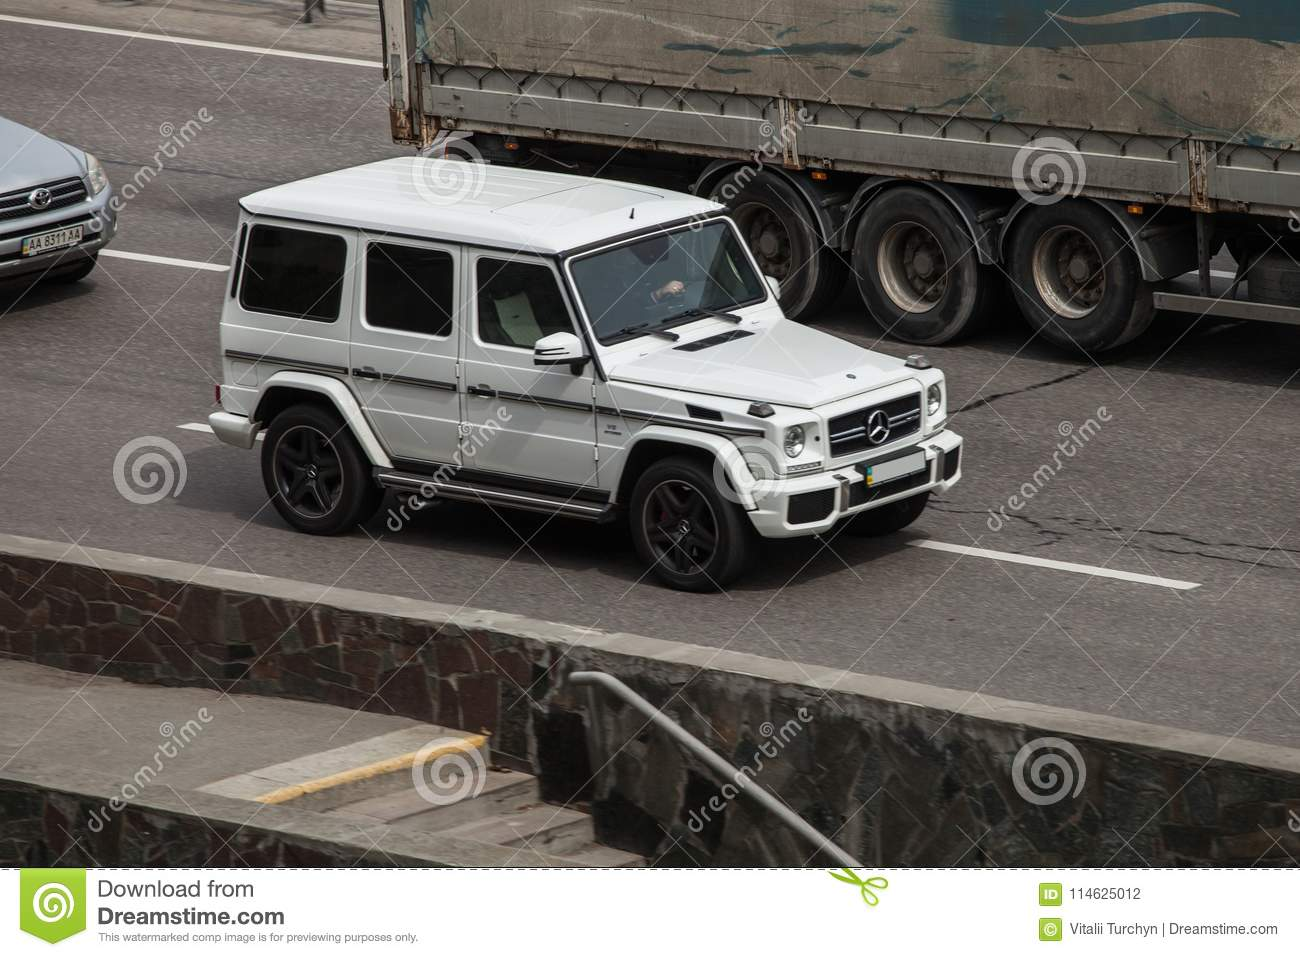 Luxury Car White Mercedes Benz G Speeding On Empty Highway Editorial Photography Image Of Automobile Fastest 114625012